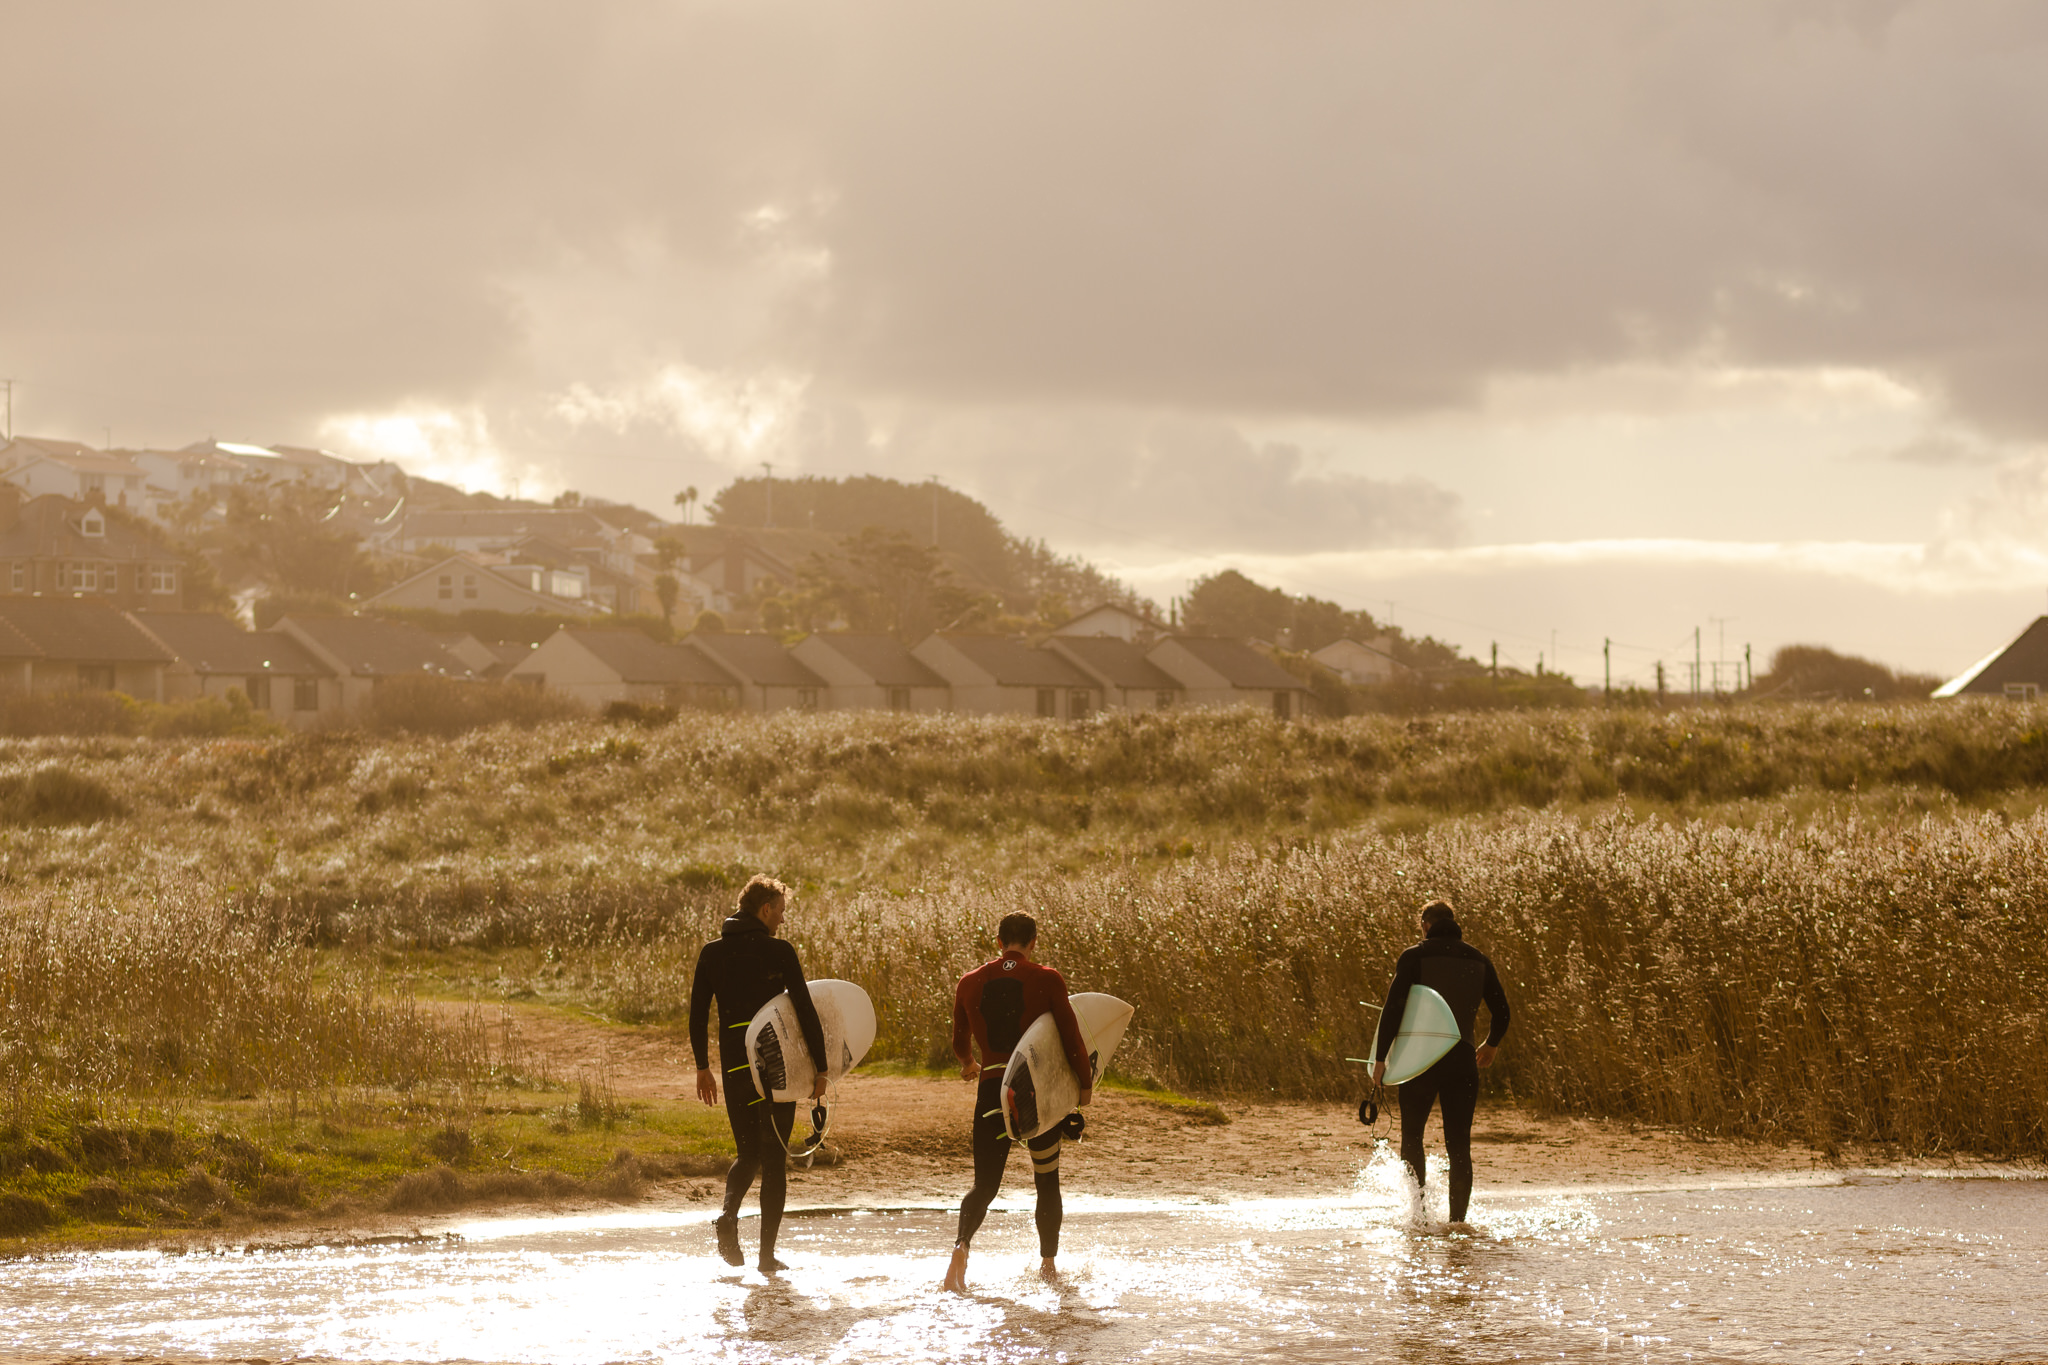 3 men carrying surfboards walking through the dunes at Holywell Bay